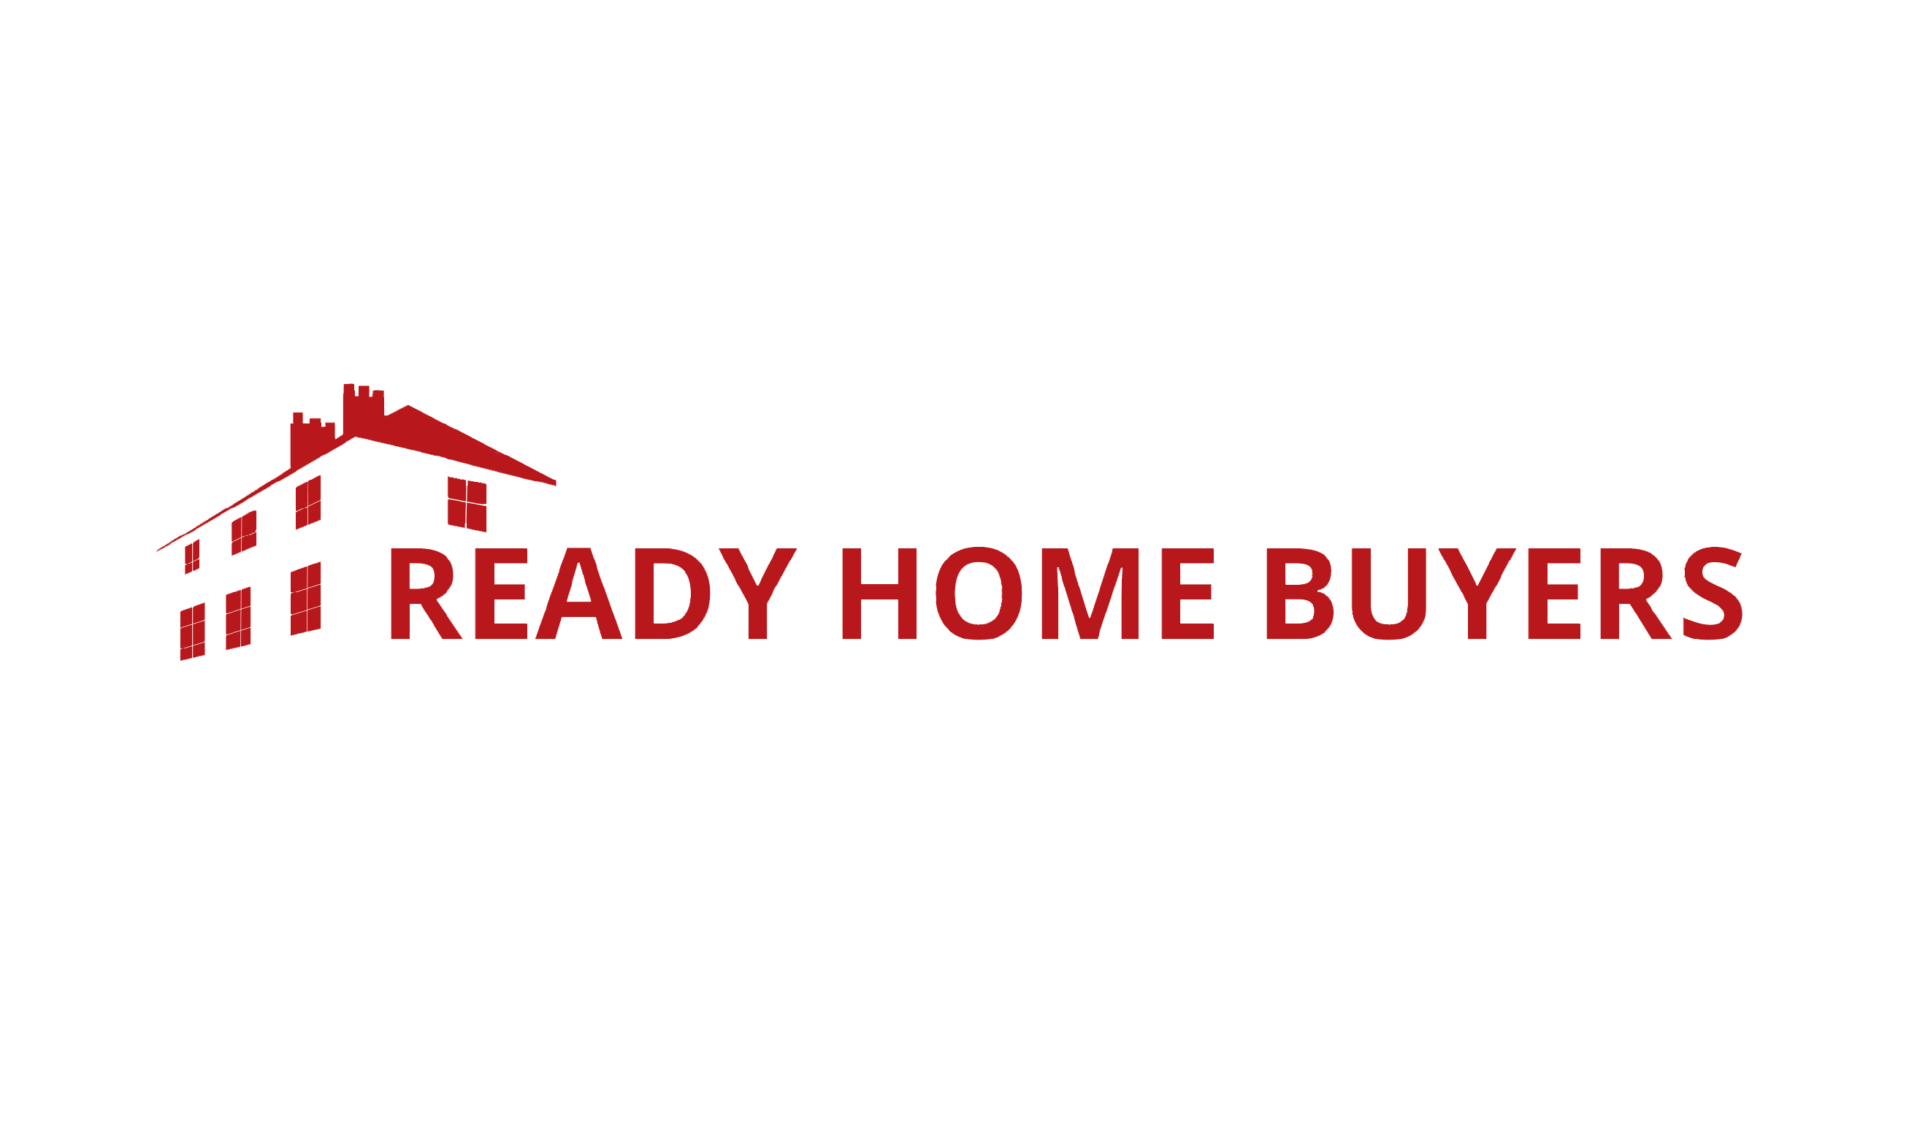 Ready Home Buyers logo